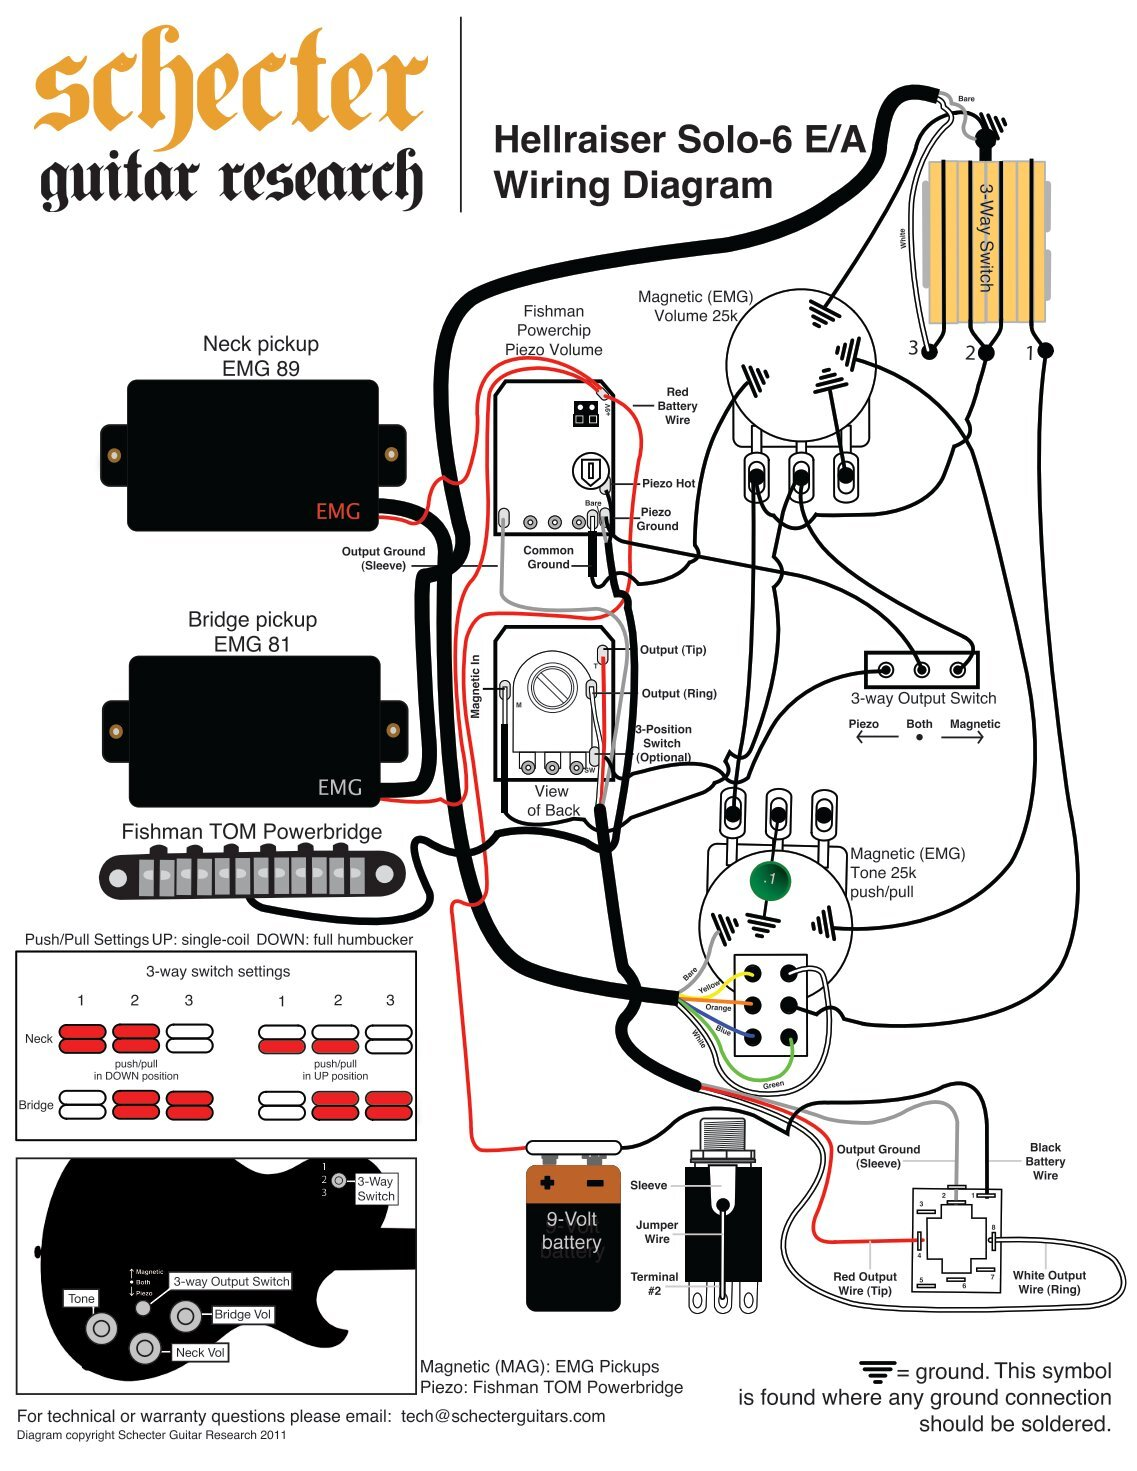 hellraiser solo 6 wiring diagram schecter guitars?resize\\\\\\\\\\\\\\\\\\\\\\\\\\\\\\\\\\\\\\\\\\\\\\\\\\\\\\\\\\\\\\\\\\\\\\\\\\\\\\\\\\\\\\\\\\\\\\\\\\\\\\\\\\\\\\\\\\\\\\\\\\\\\\\=665%2C860\\\\\\\\\\\\\\\\\\\\\\\\\\\\\\\\\\\\\\\\\\\\\\\\\\\\\\\\\\\\\\\\\\\\\\\\\\\\\\\\\\\\\\\\\\\\\\\\\\\\\\\\\\\\\\\\\\\\\\\\\\\\\\\&ssl\\\\\\\\\\\\\\\\\\\\\\\\\\\\\\\\\\\\\\\\\\\\\\\\\\\\\\\\\\\\\\\\\\\\\\\\\\\\\\\\\\\\\\\\\\\\\\\\\\\\\\\\\\\\\\\\\\\\\\\\\\\\\\\=1 outstanding zakk wylde emg wiring diagram pictures wiring emg wiring schematics at gsmx.co